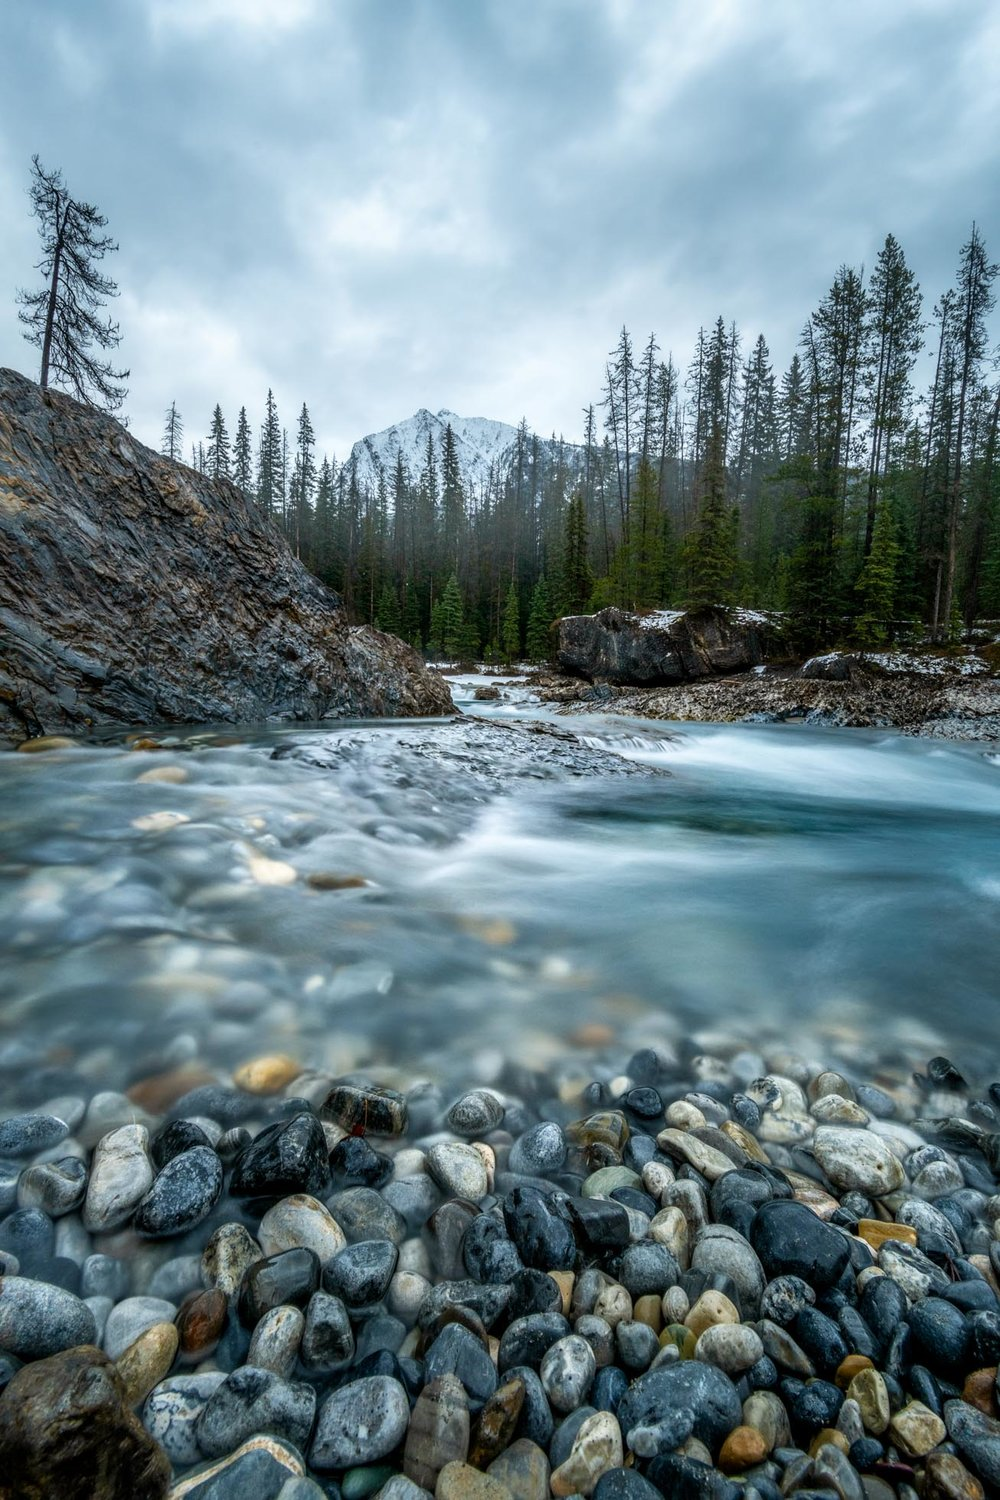 4 seconds at Natural Bridge in Yoho National Park - using a 6 stop filter.